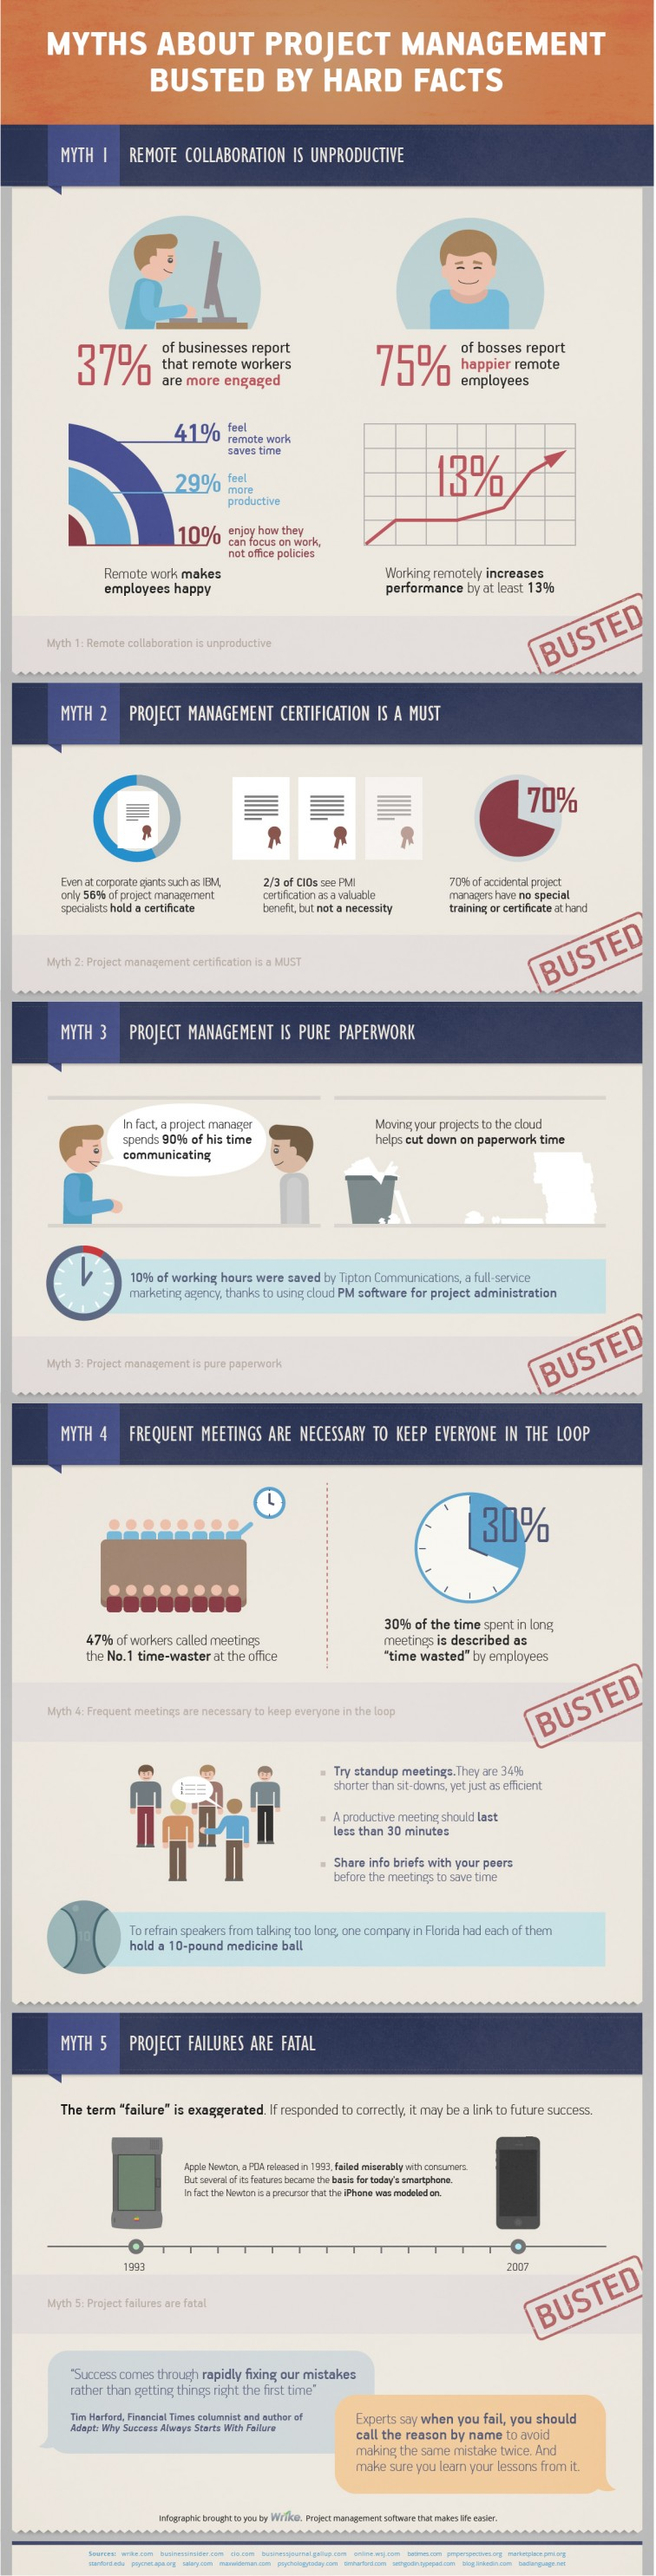 Myths-About-Project-Management-Busted-By-Hard-Facts-Infographic